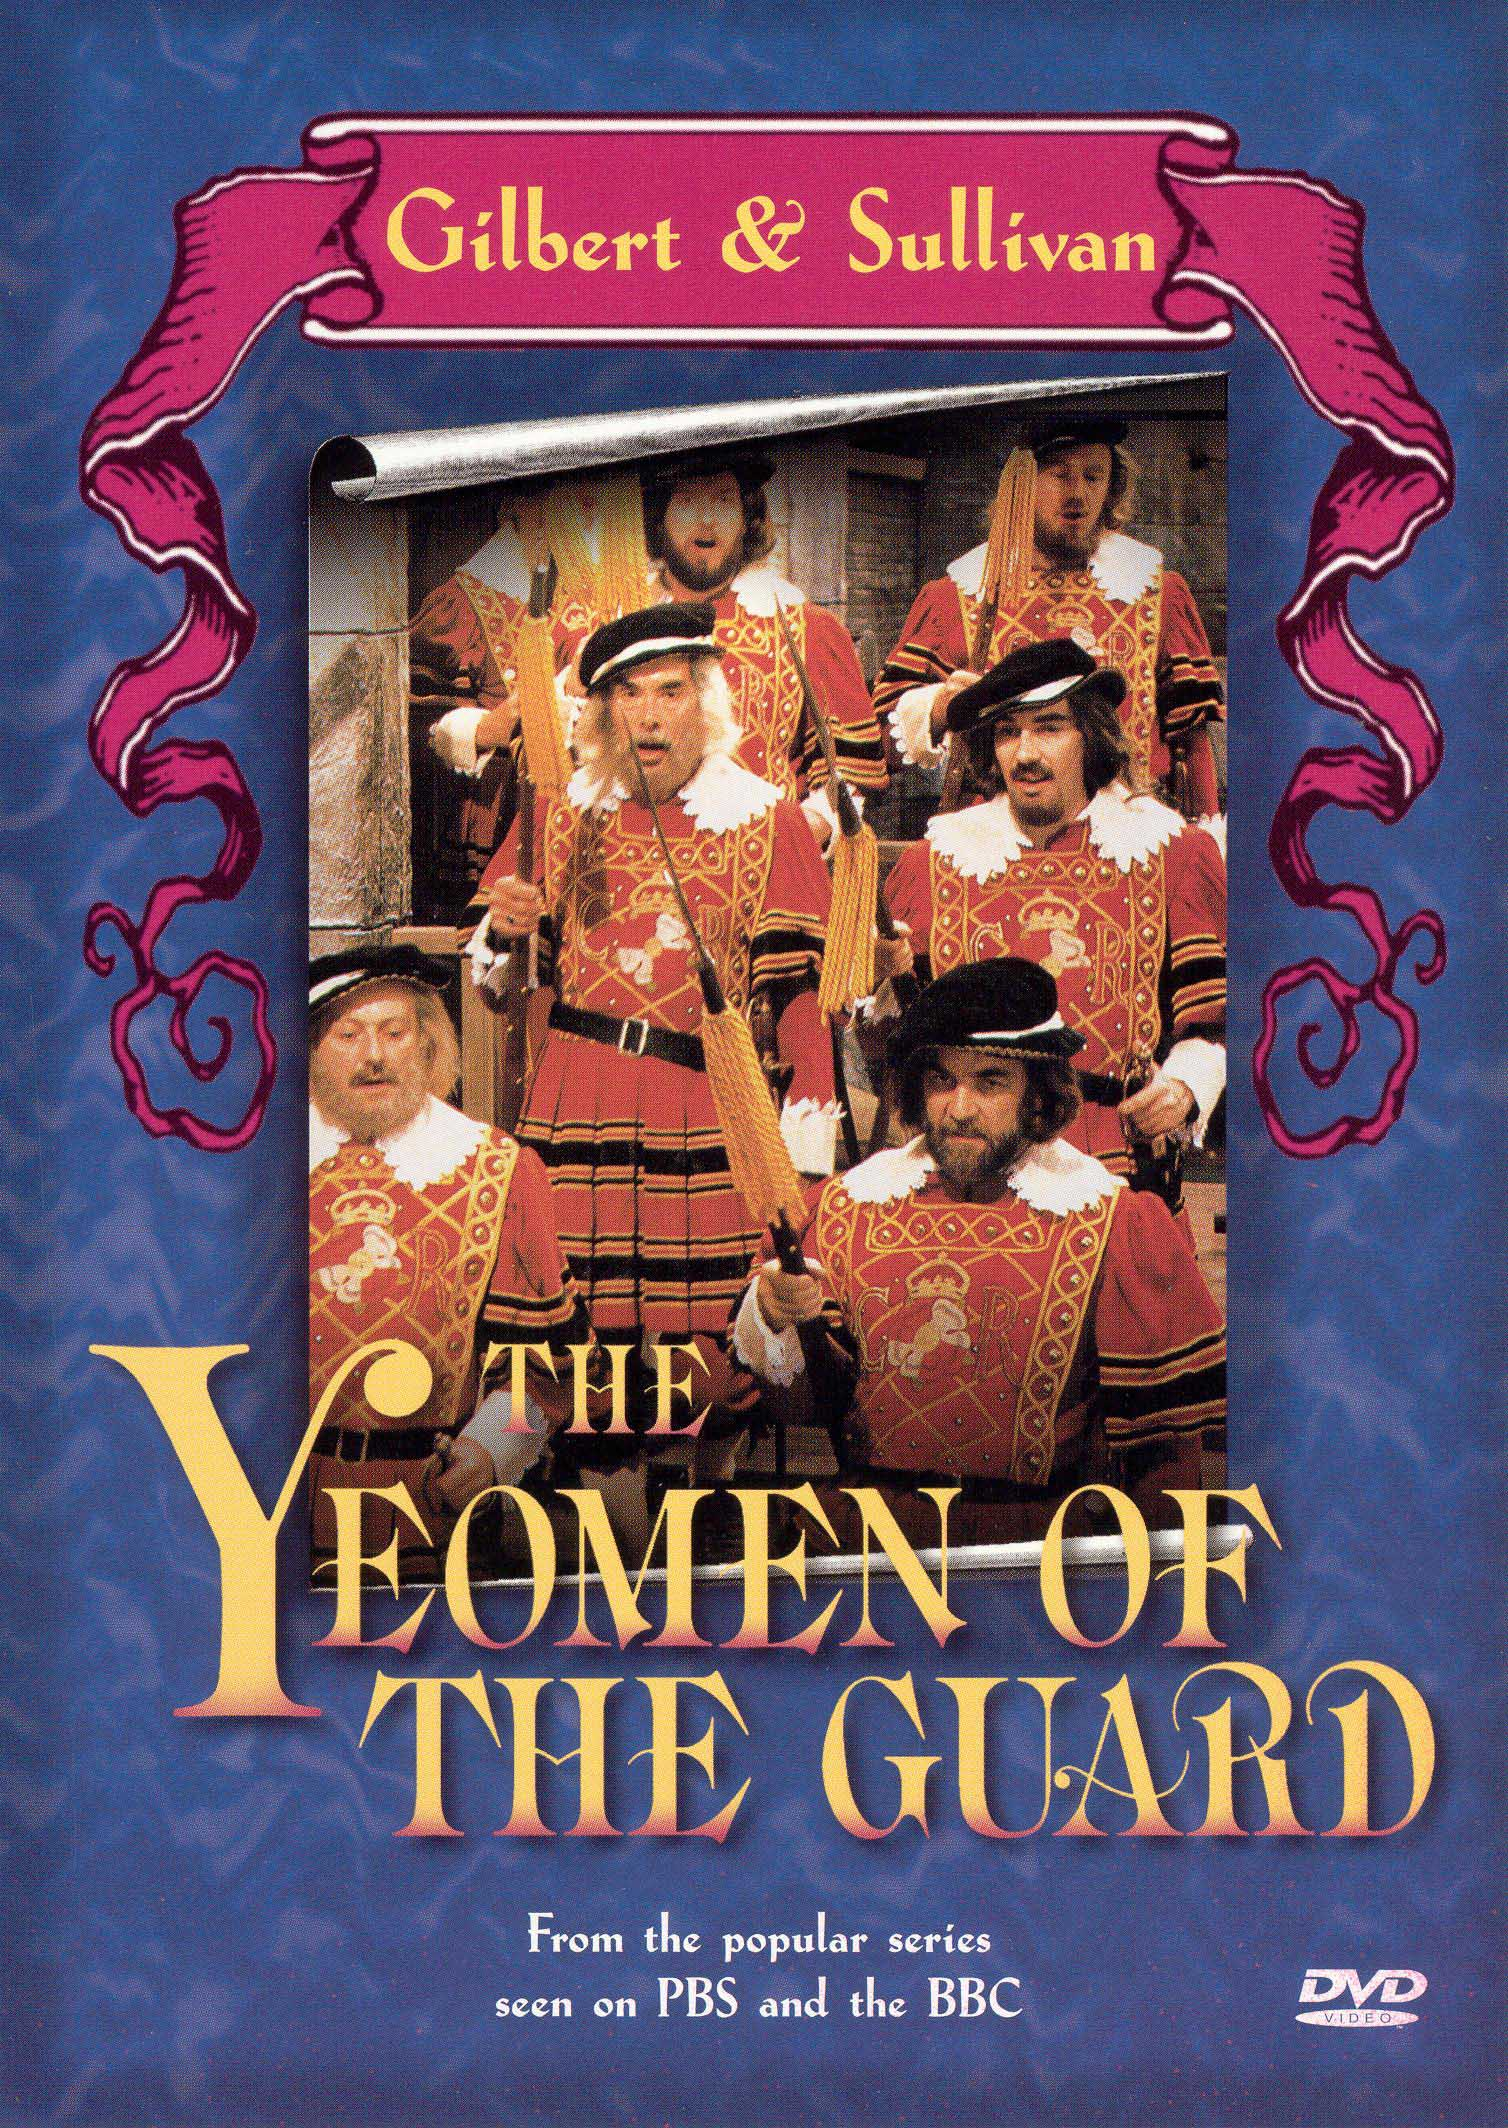 The Yeomen of the Guard